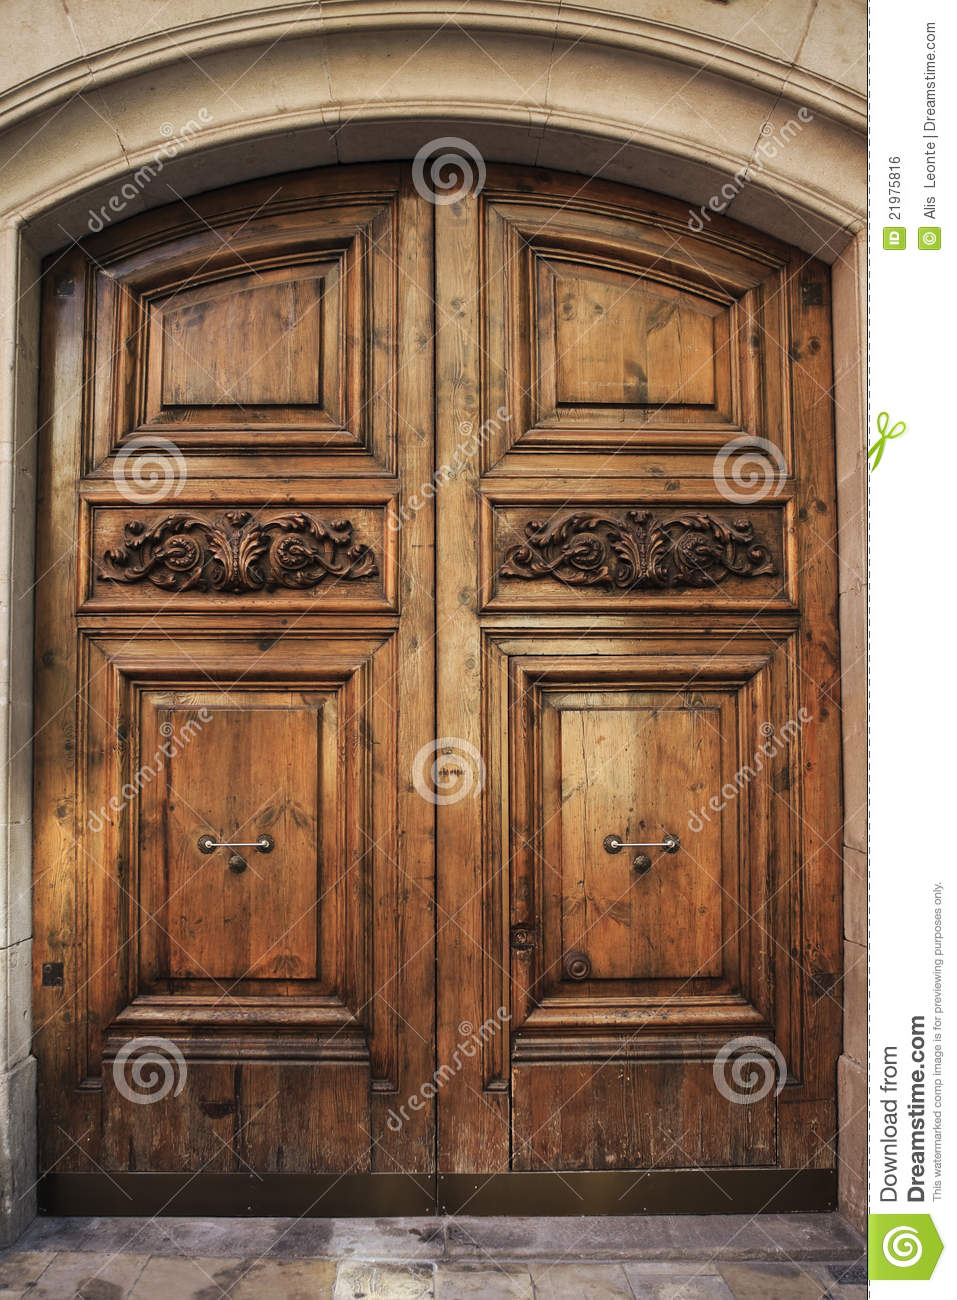 Old Wooden Doors : Antique wooden door stock photo image of access